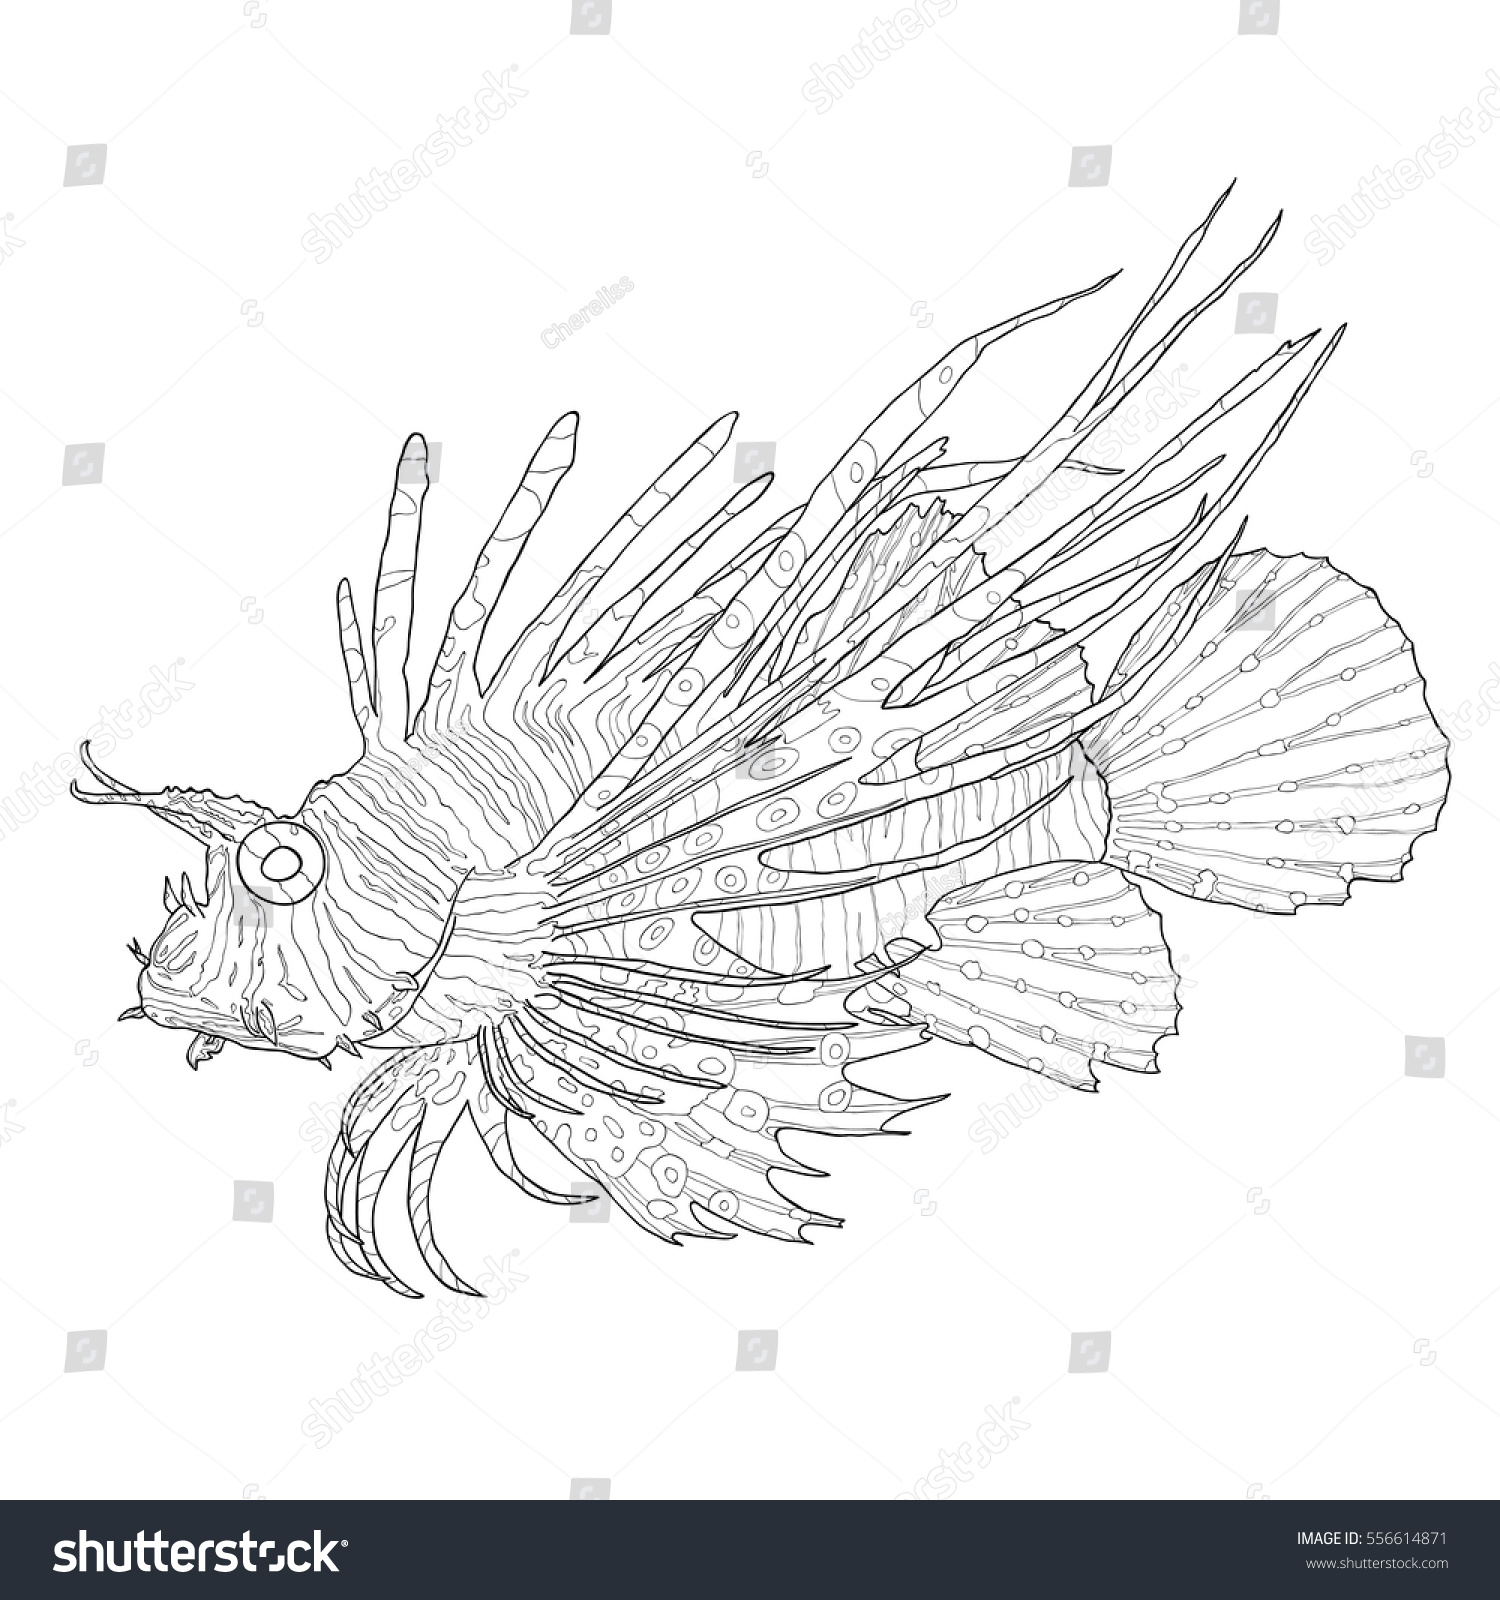 Tropical Fish Scorpion Fish Red Lionfish Stock Vector 556614871